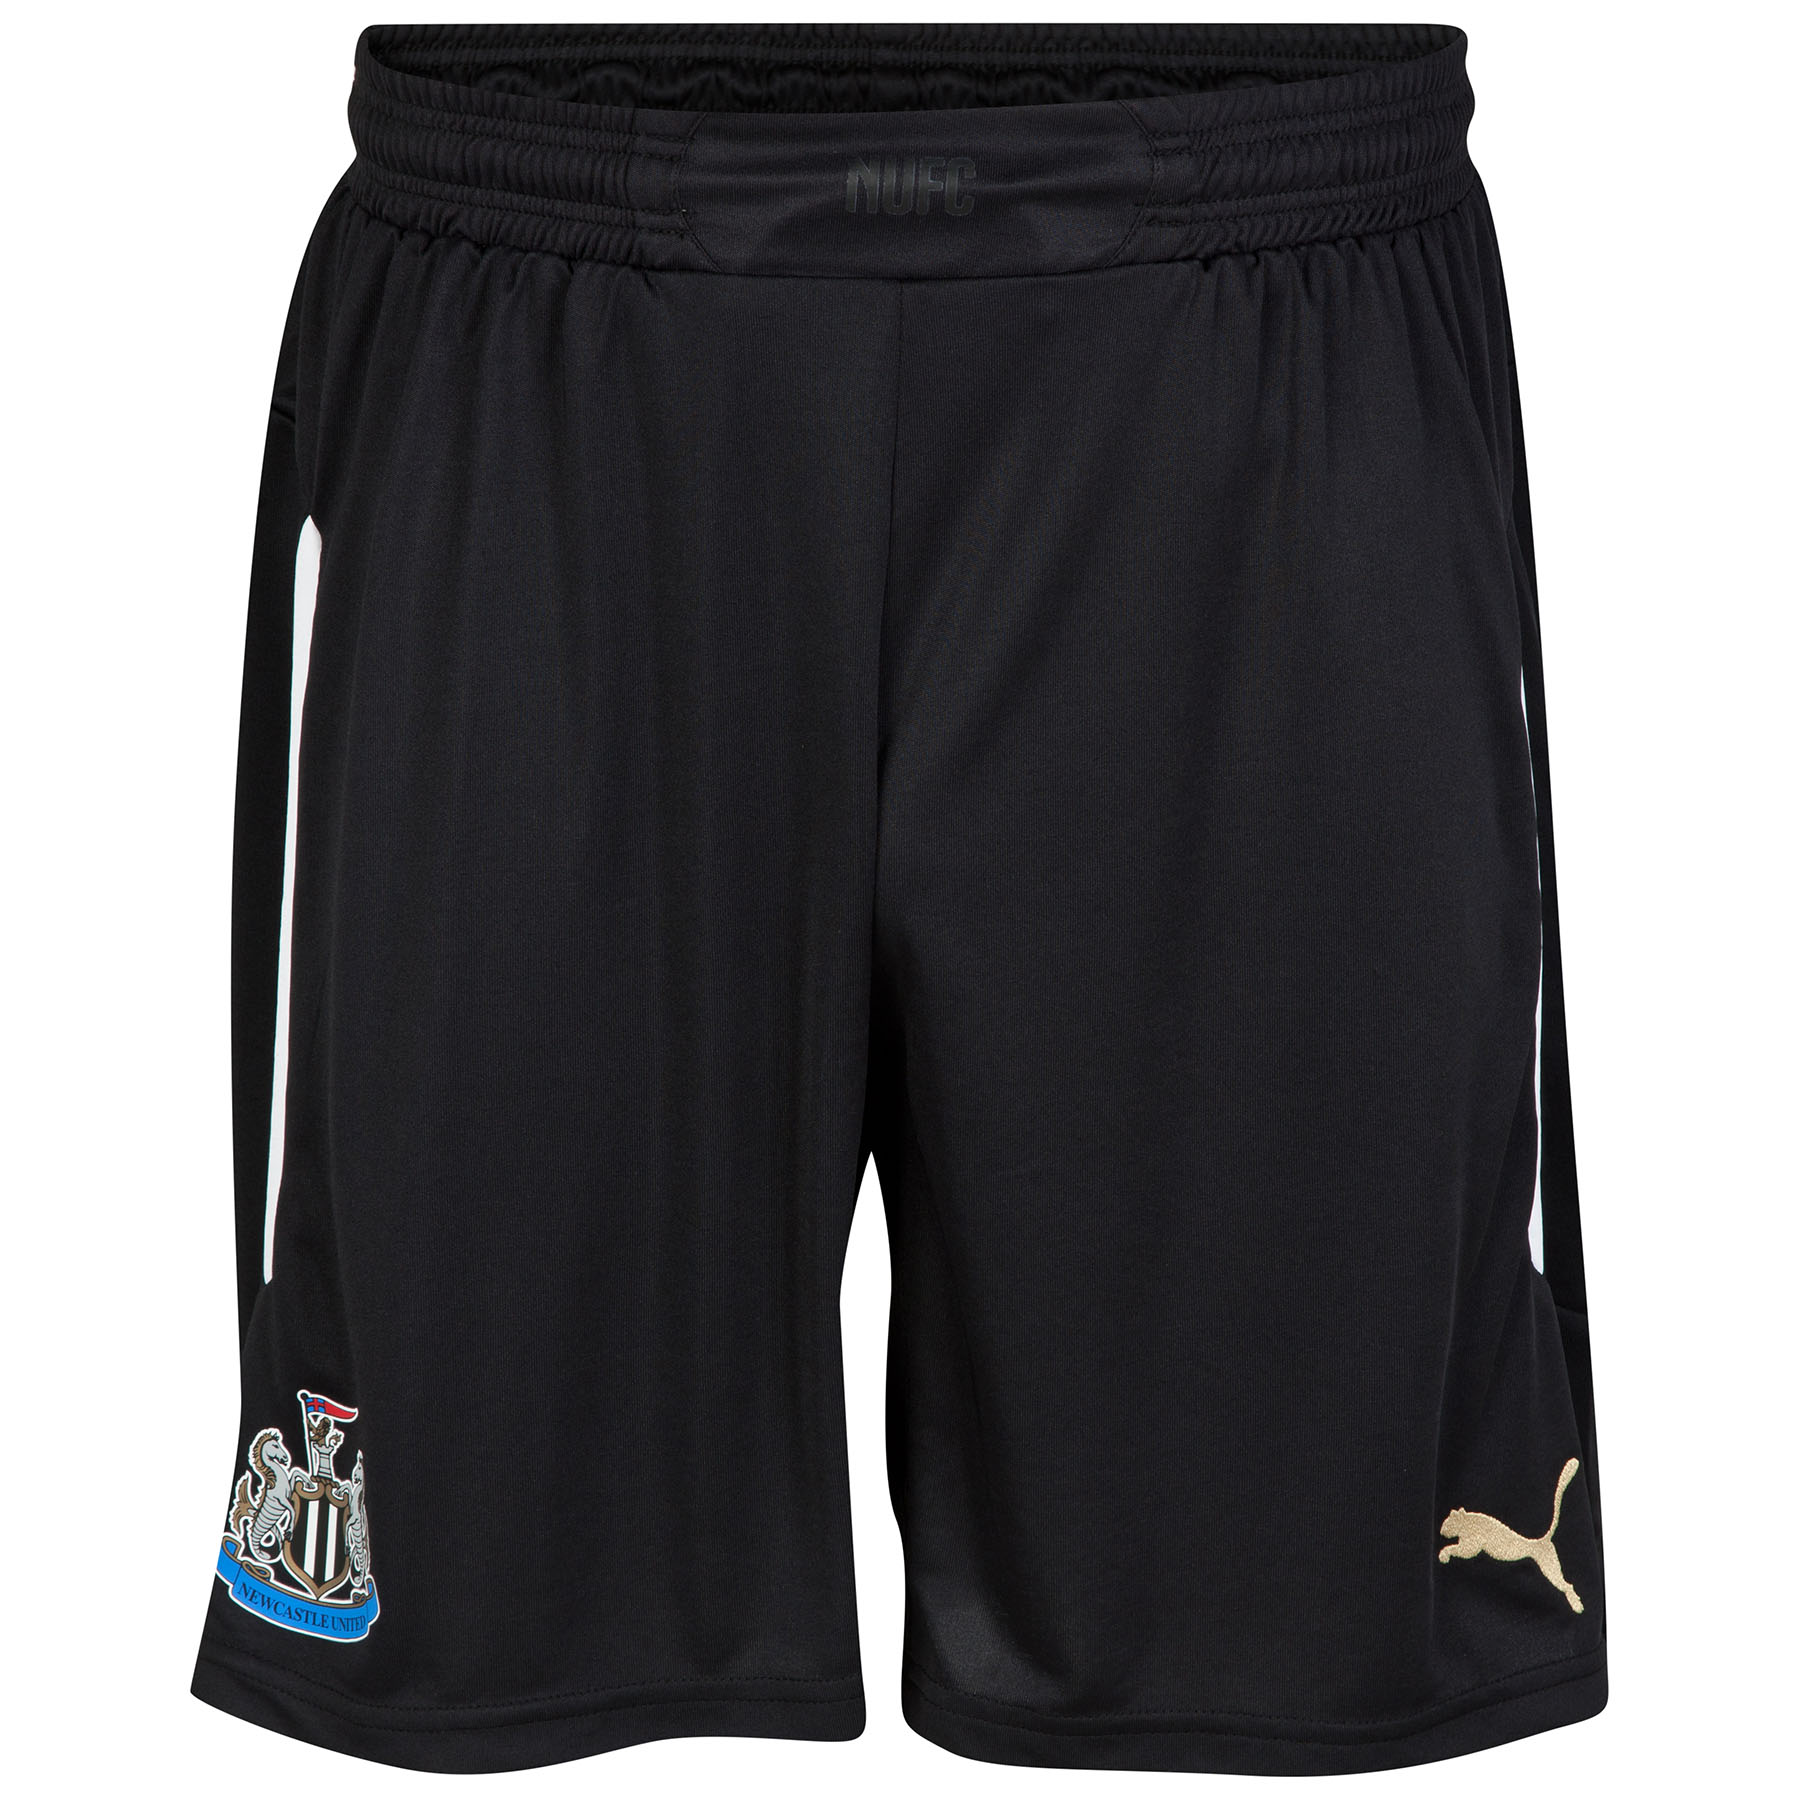 Newcastle United Home Shorts 2014/15